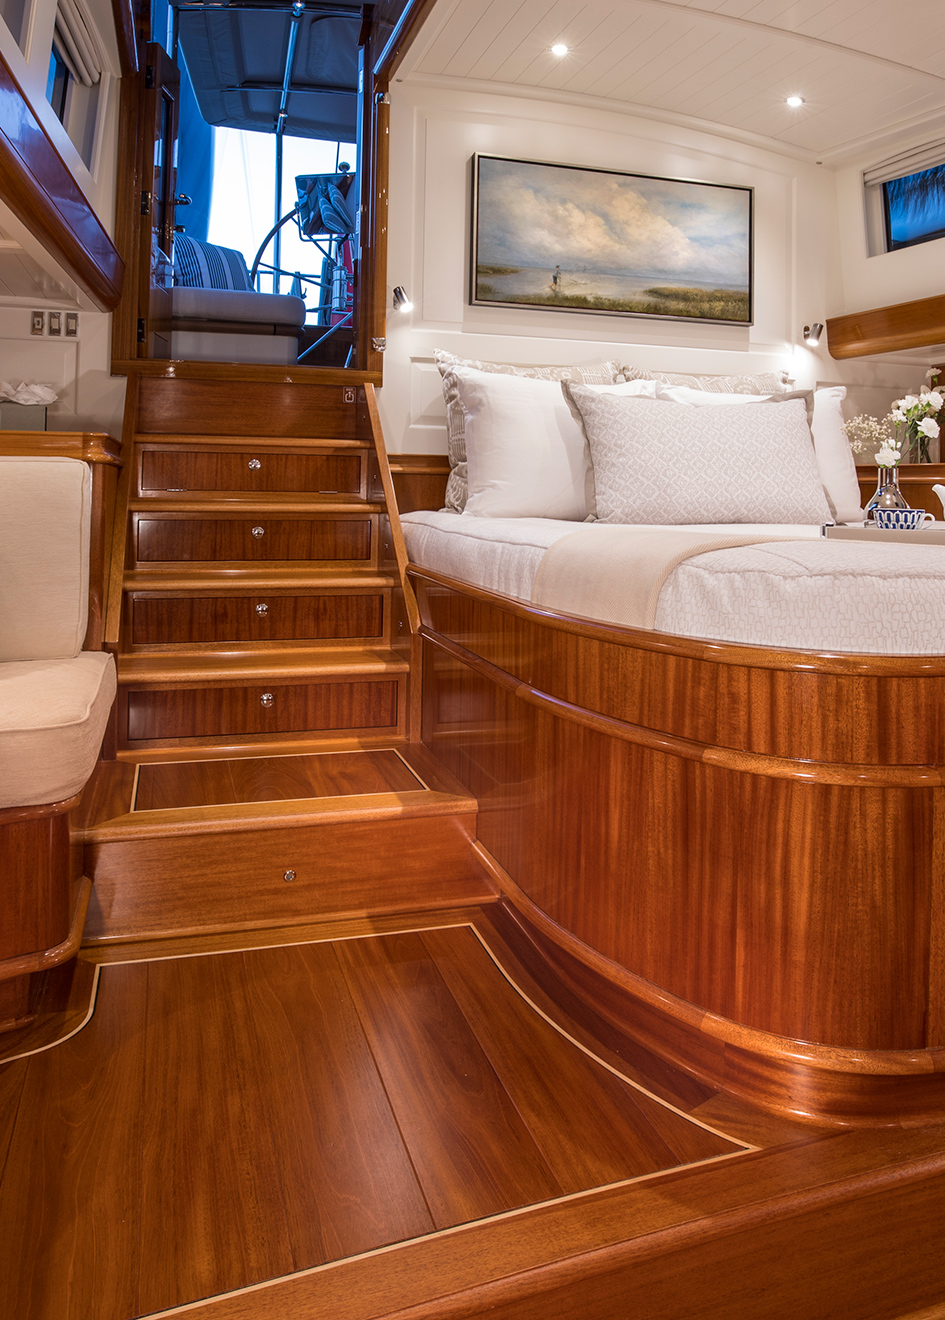 the-stairs-and-cabin-of-claasen-truly-classic-90-sailing-yacht-acadia